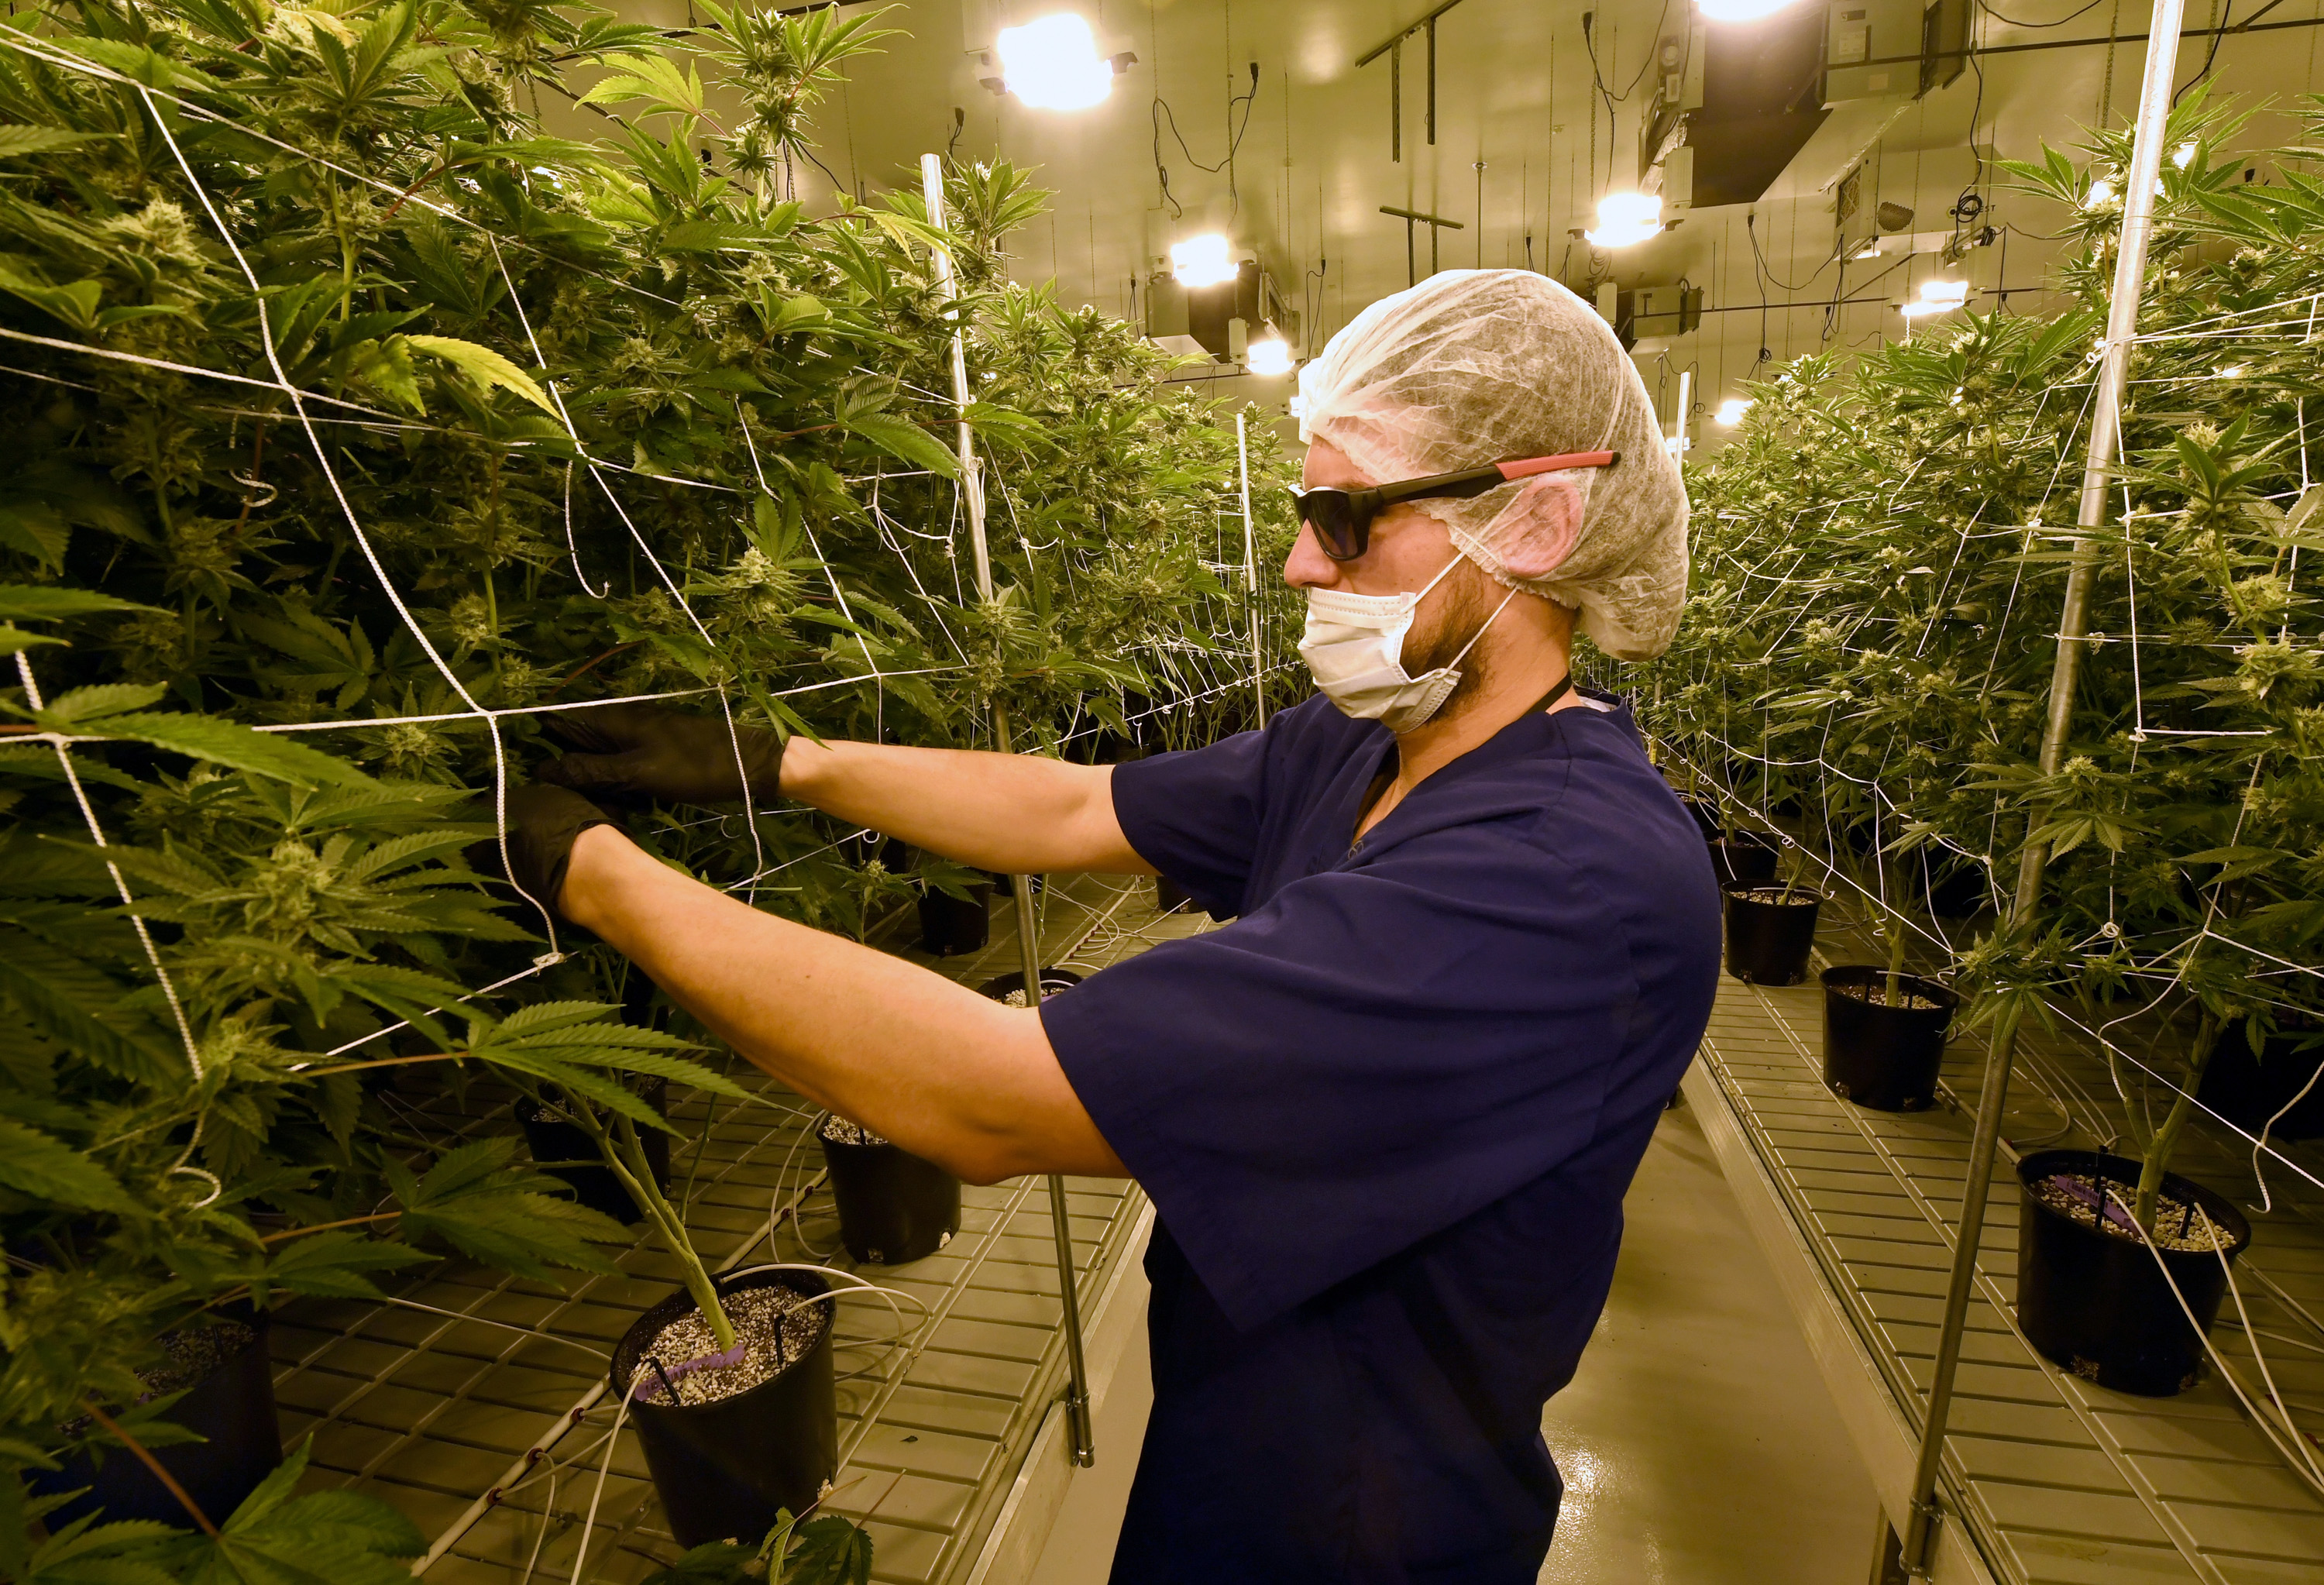 David Burr demonstrates removing leaves on marijuana plants to allow more light for growth at Essence Vegas' 54,000-square-foot marijuana cultivation facility on July 6, 2017 in Las Vegas, Nevada. (Getty Images)